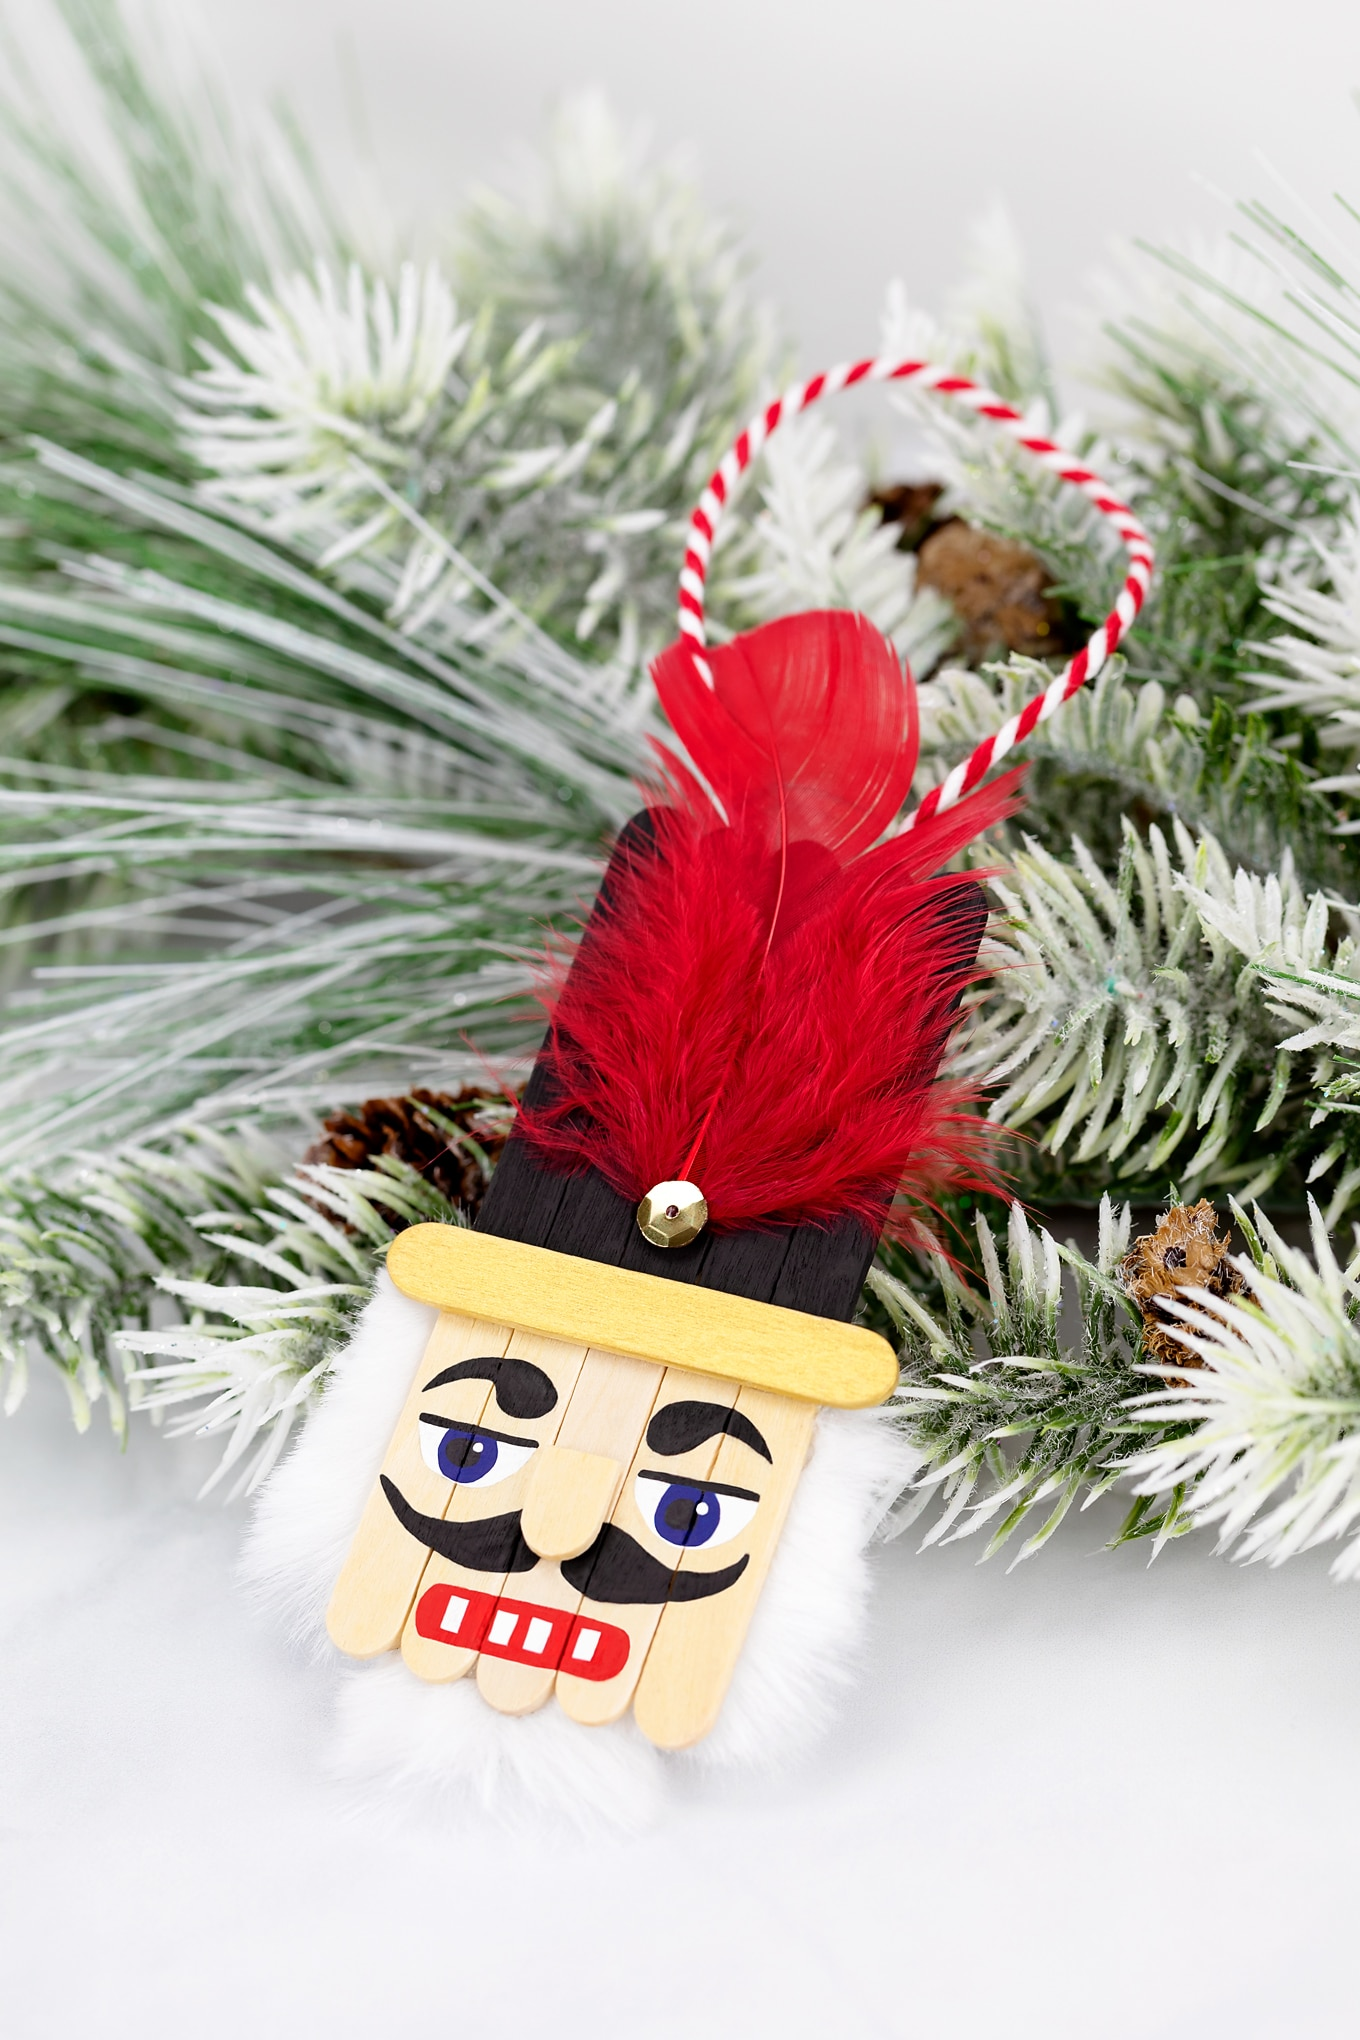 How to Make an Easy and Fun Craft Stick Nutcracker Ornament for Christmas